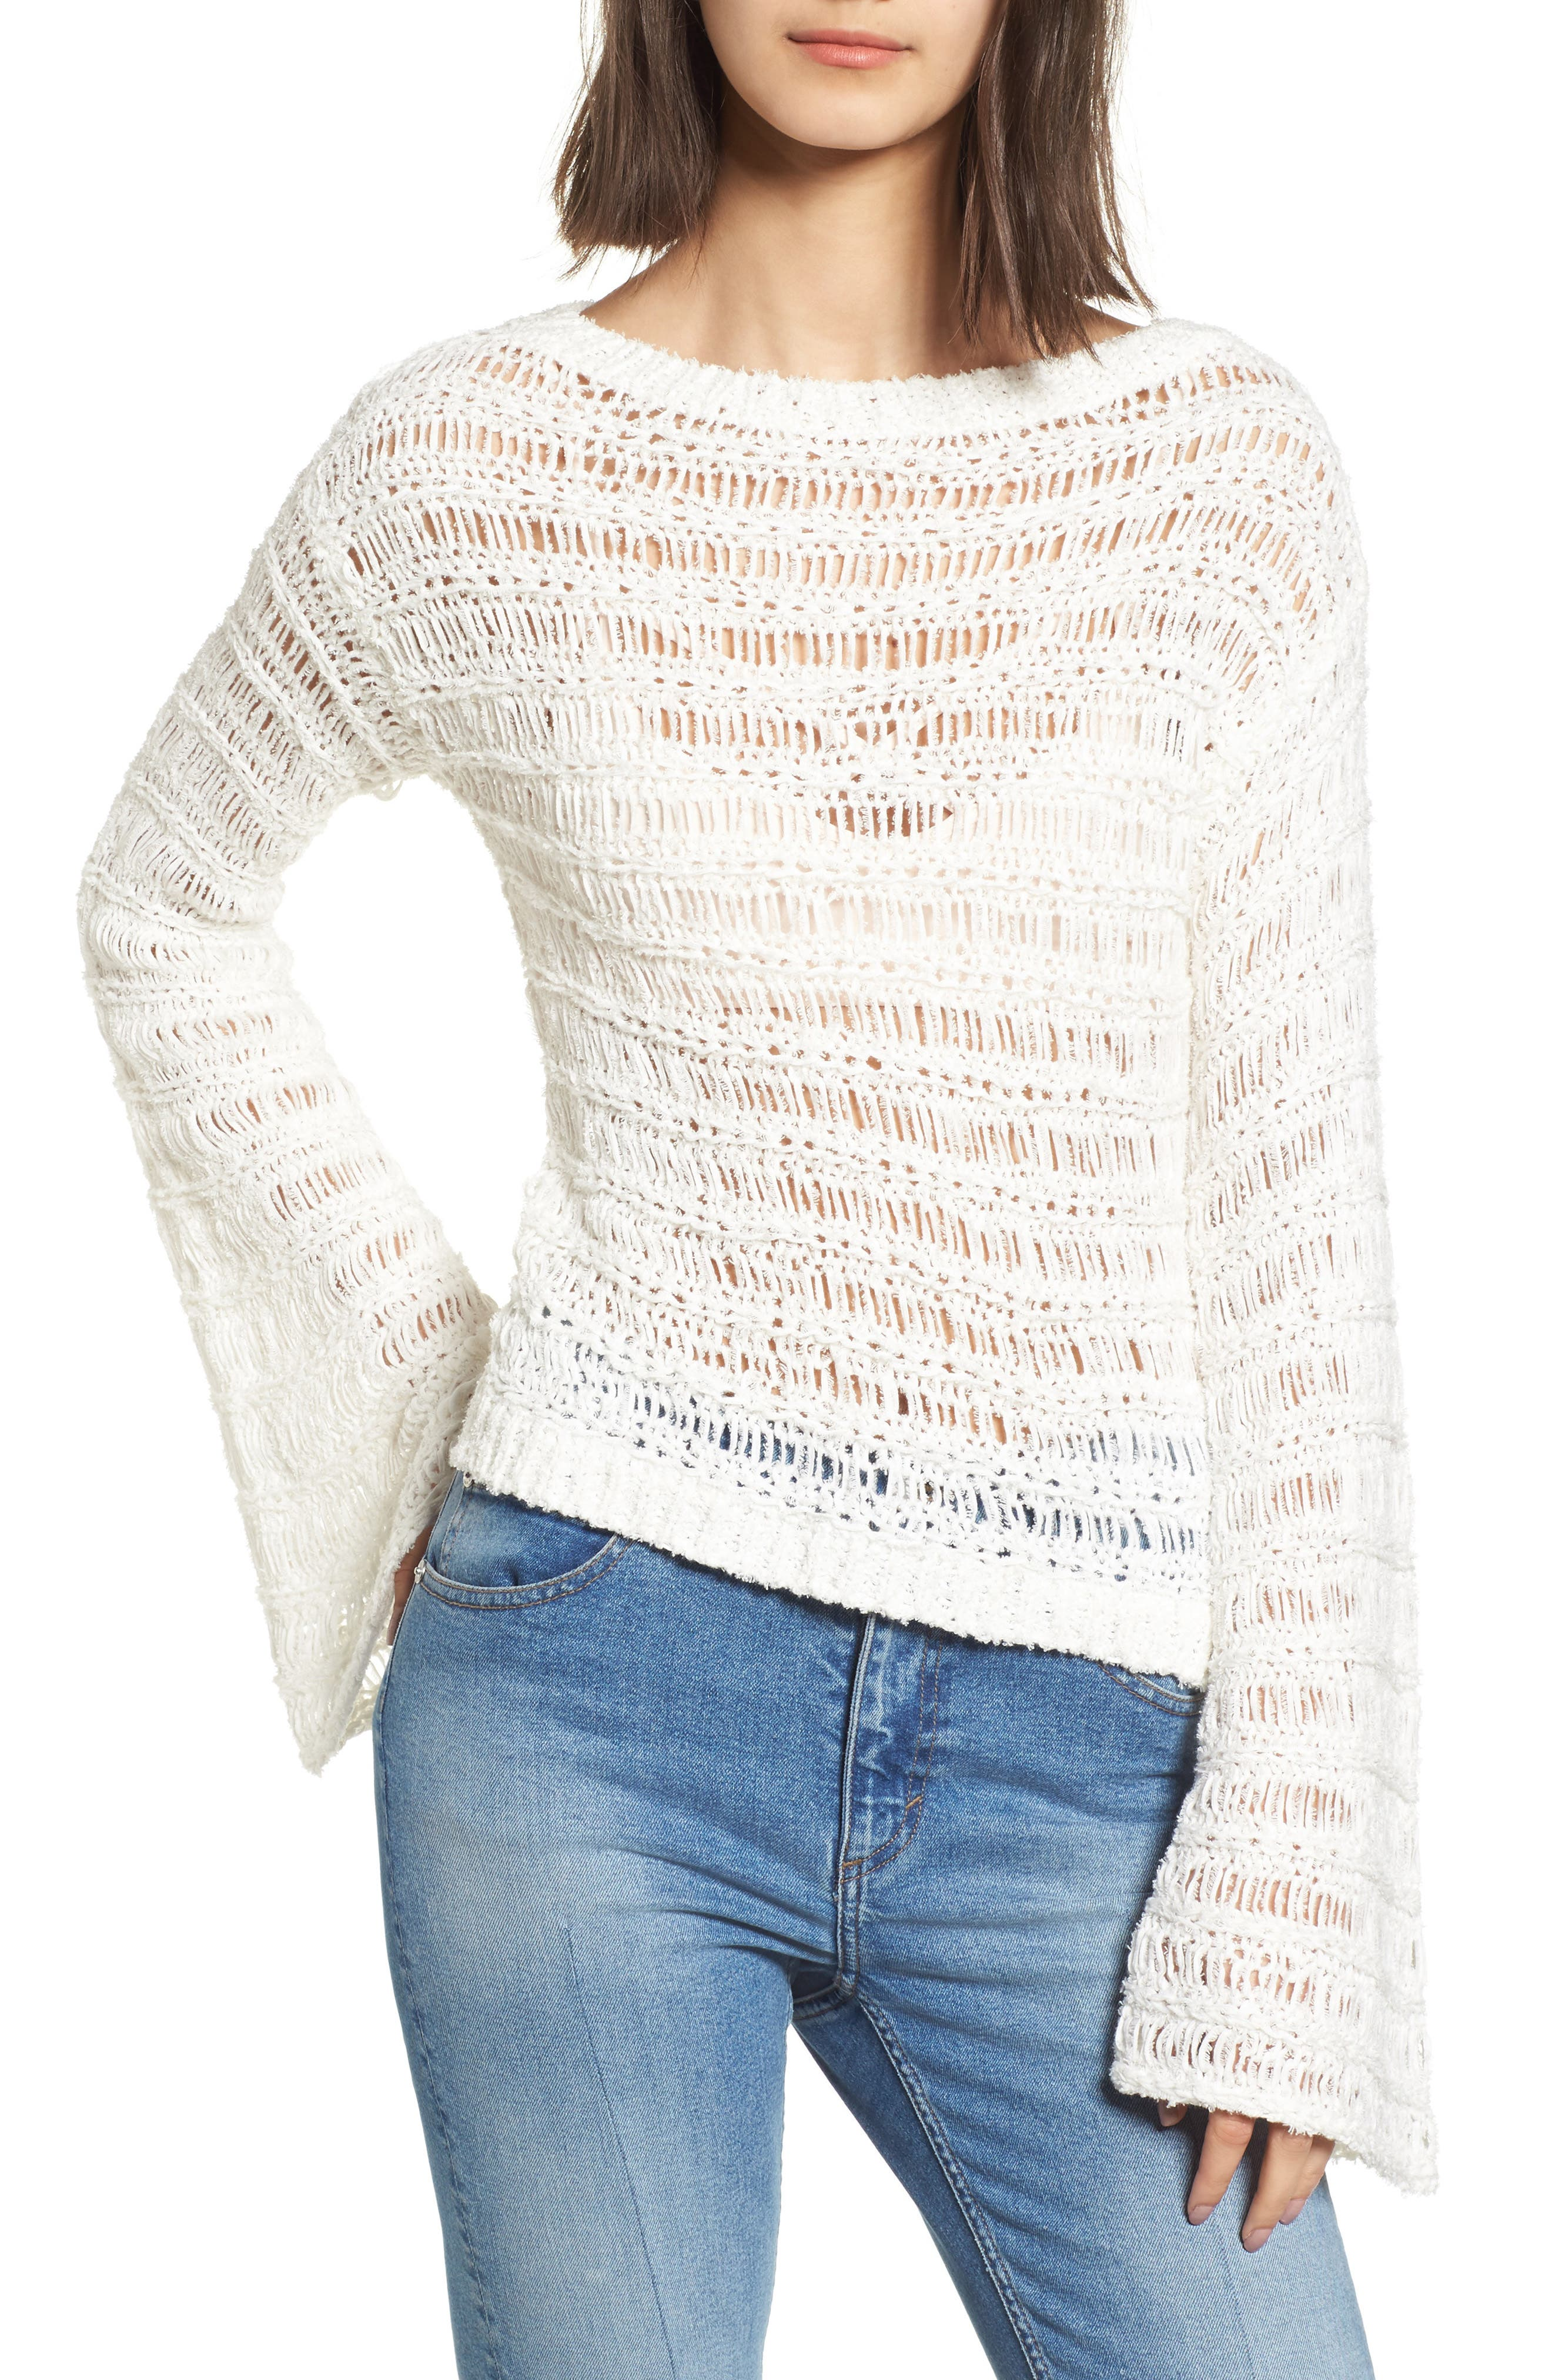 Alternate Image 1 Selected - Band of Gypsies Ladder Stitch Sweater